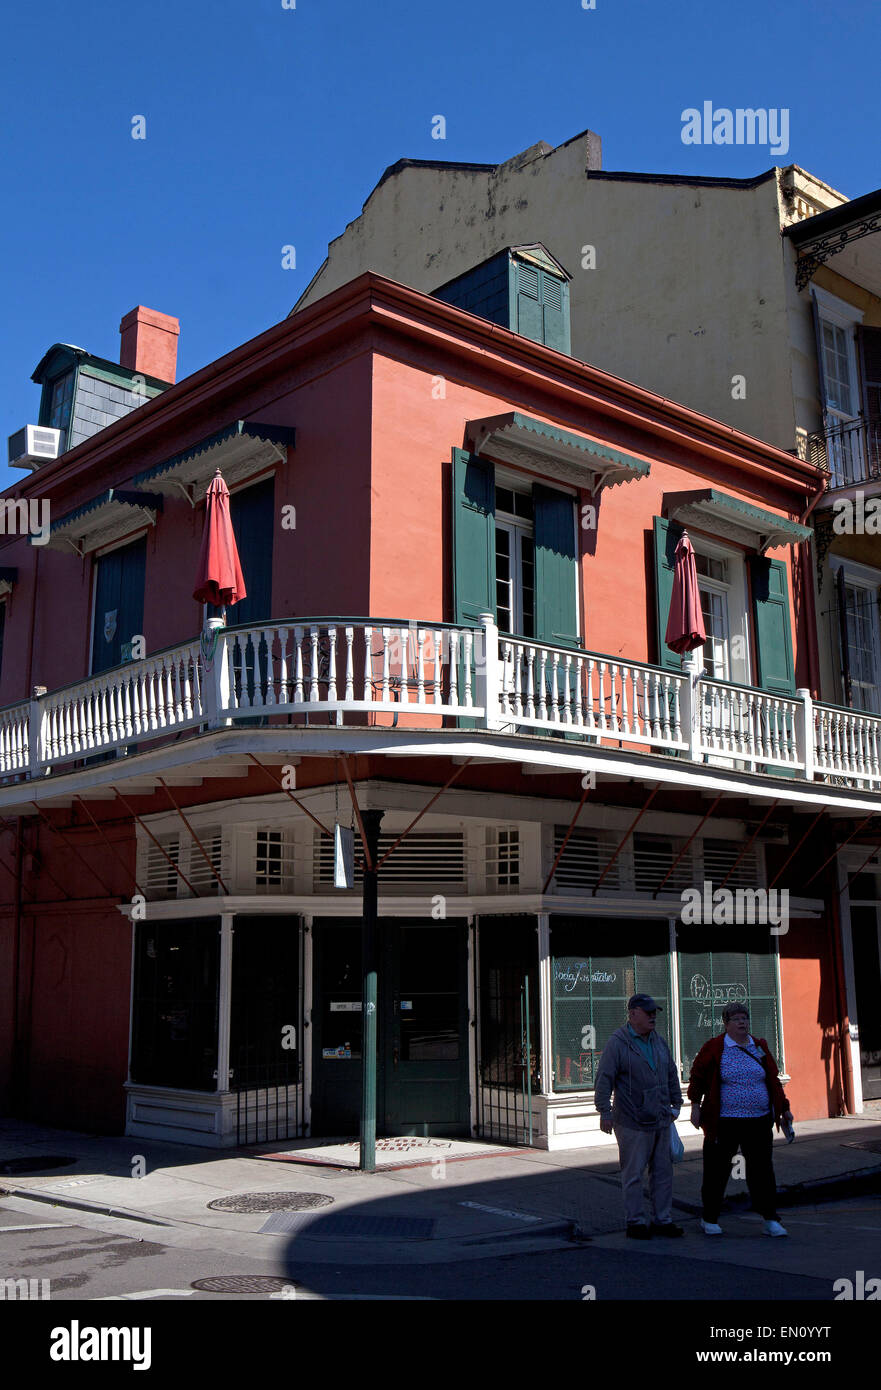 New Orleans,Louisiana: French colonial architecture on Bourboun Street, French Quarter - Stock Image